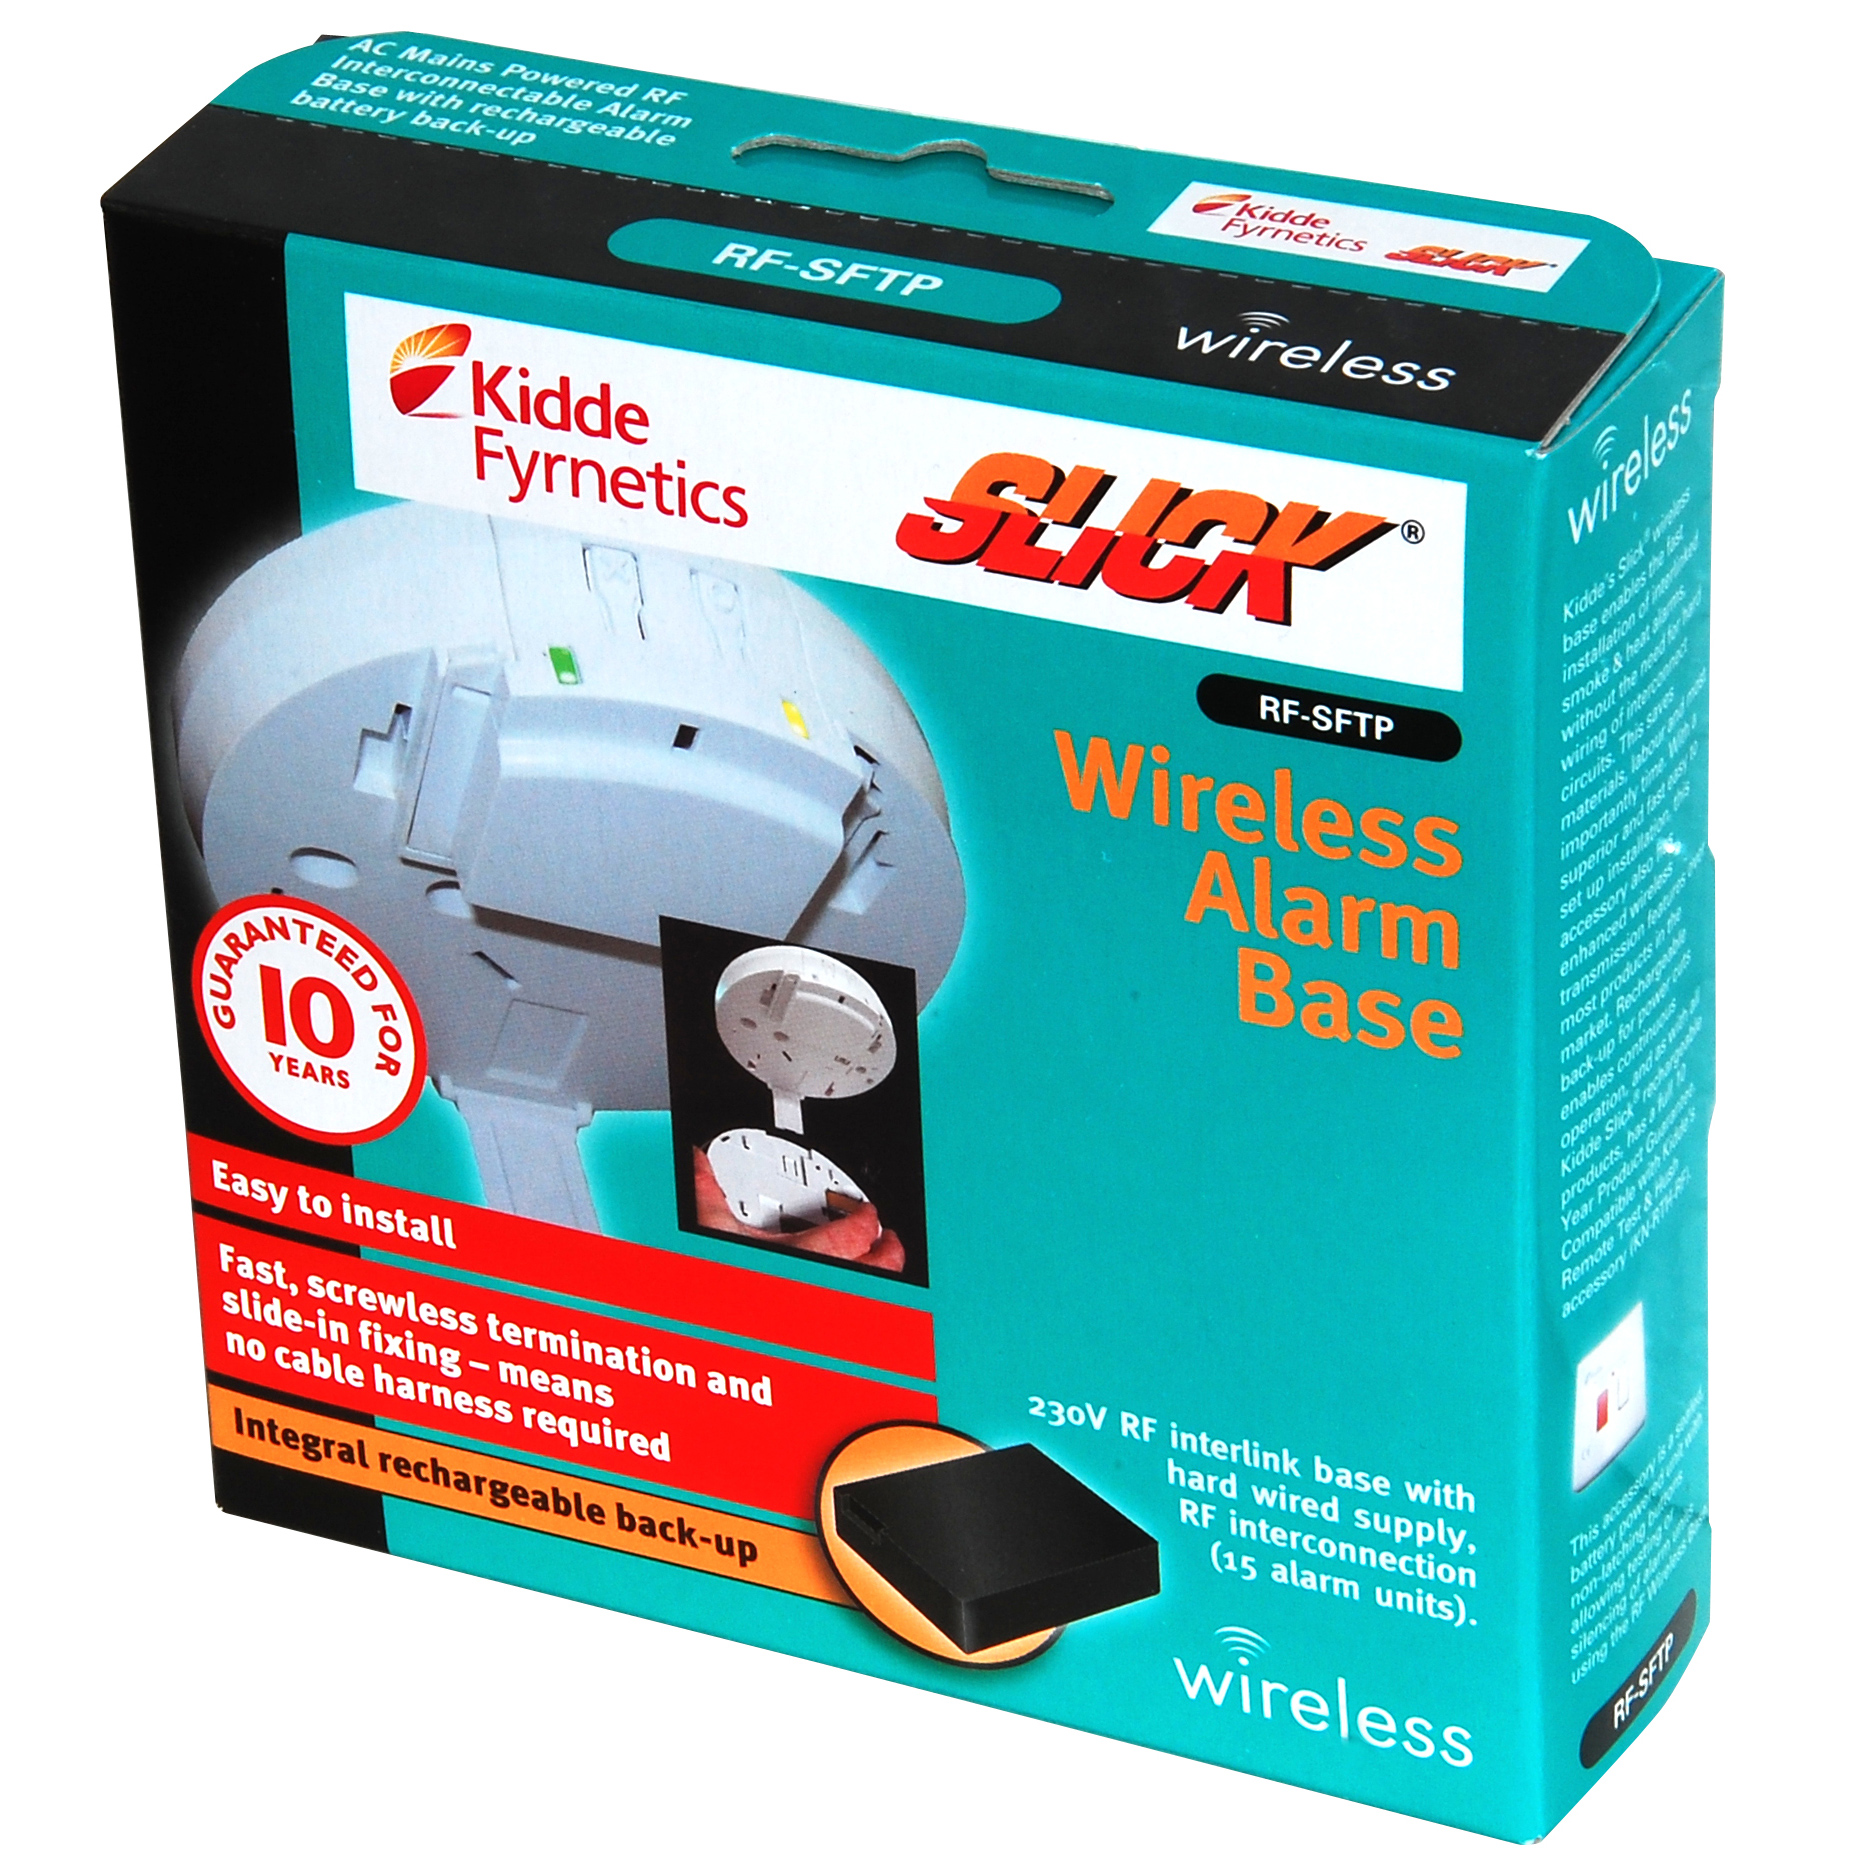 Kidde Slick Wireless Alarm Base For use with the Kidde Slick Smoke ...